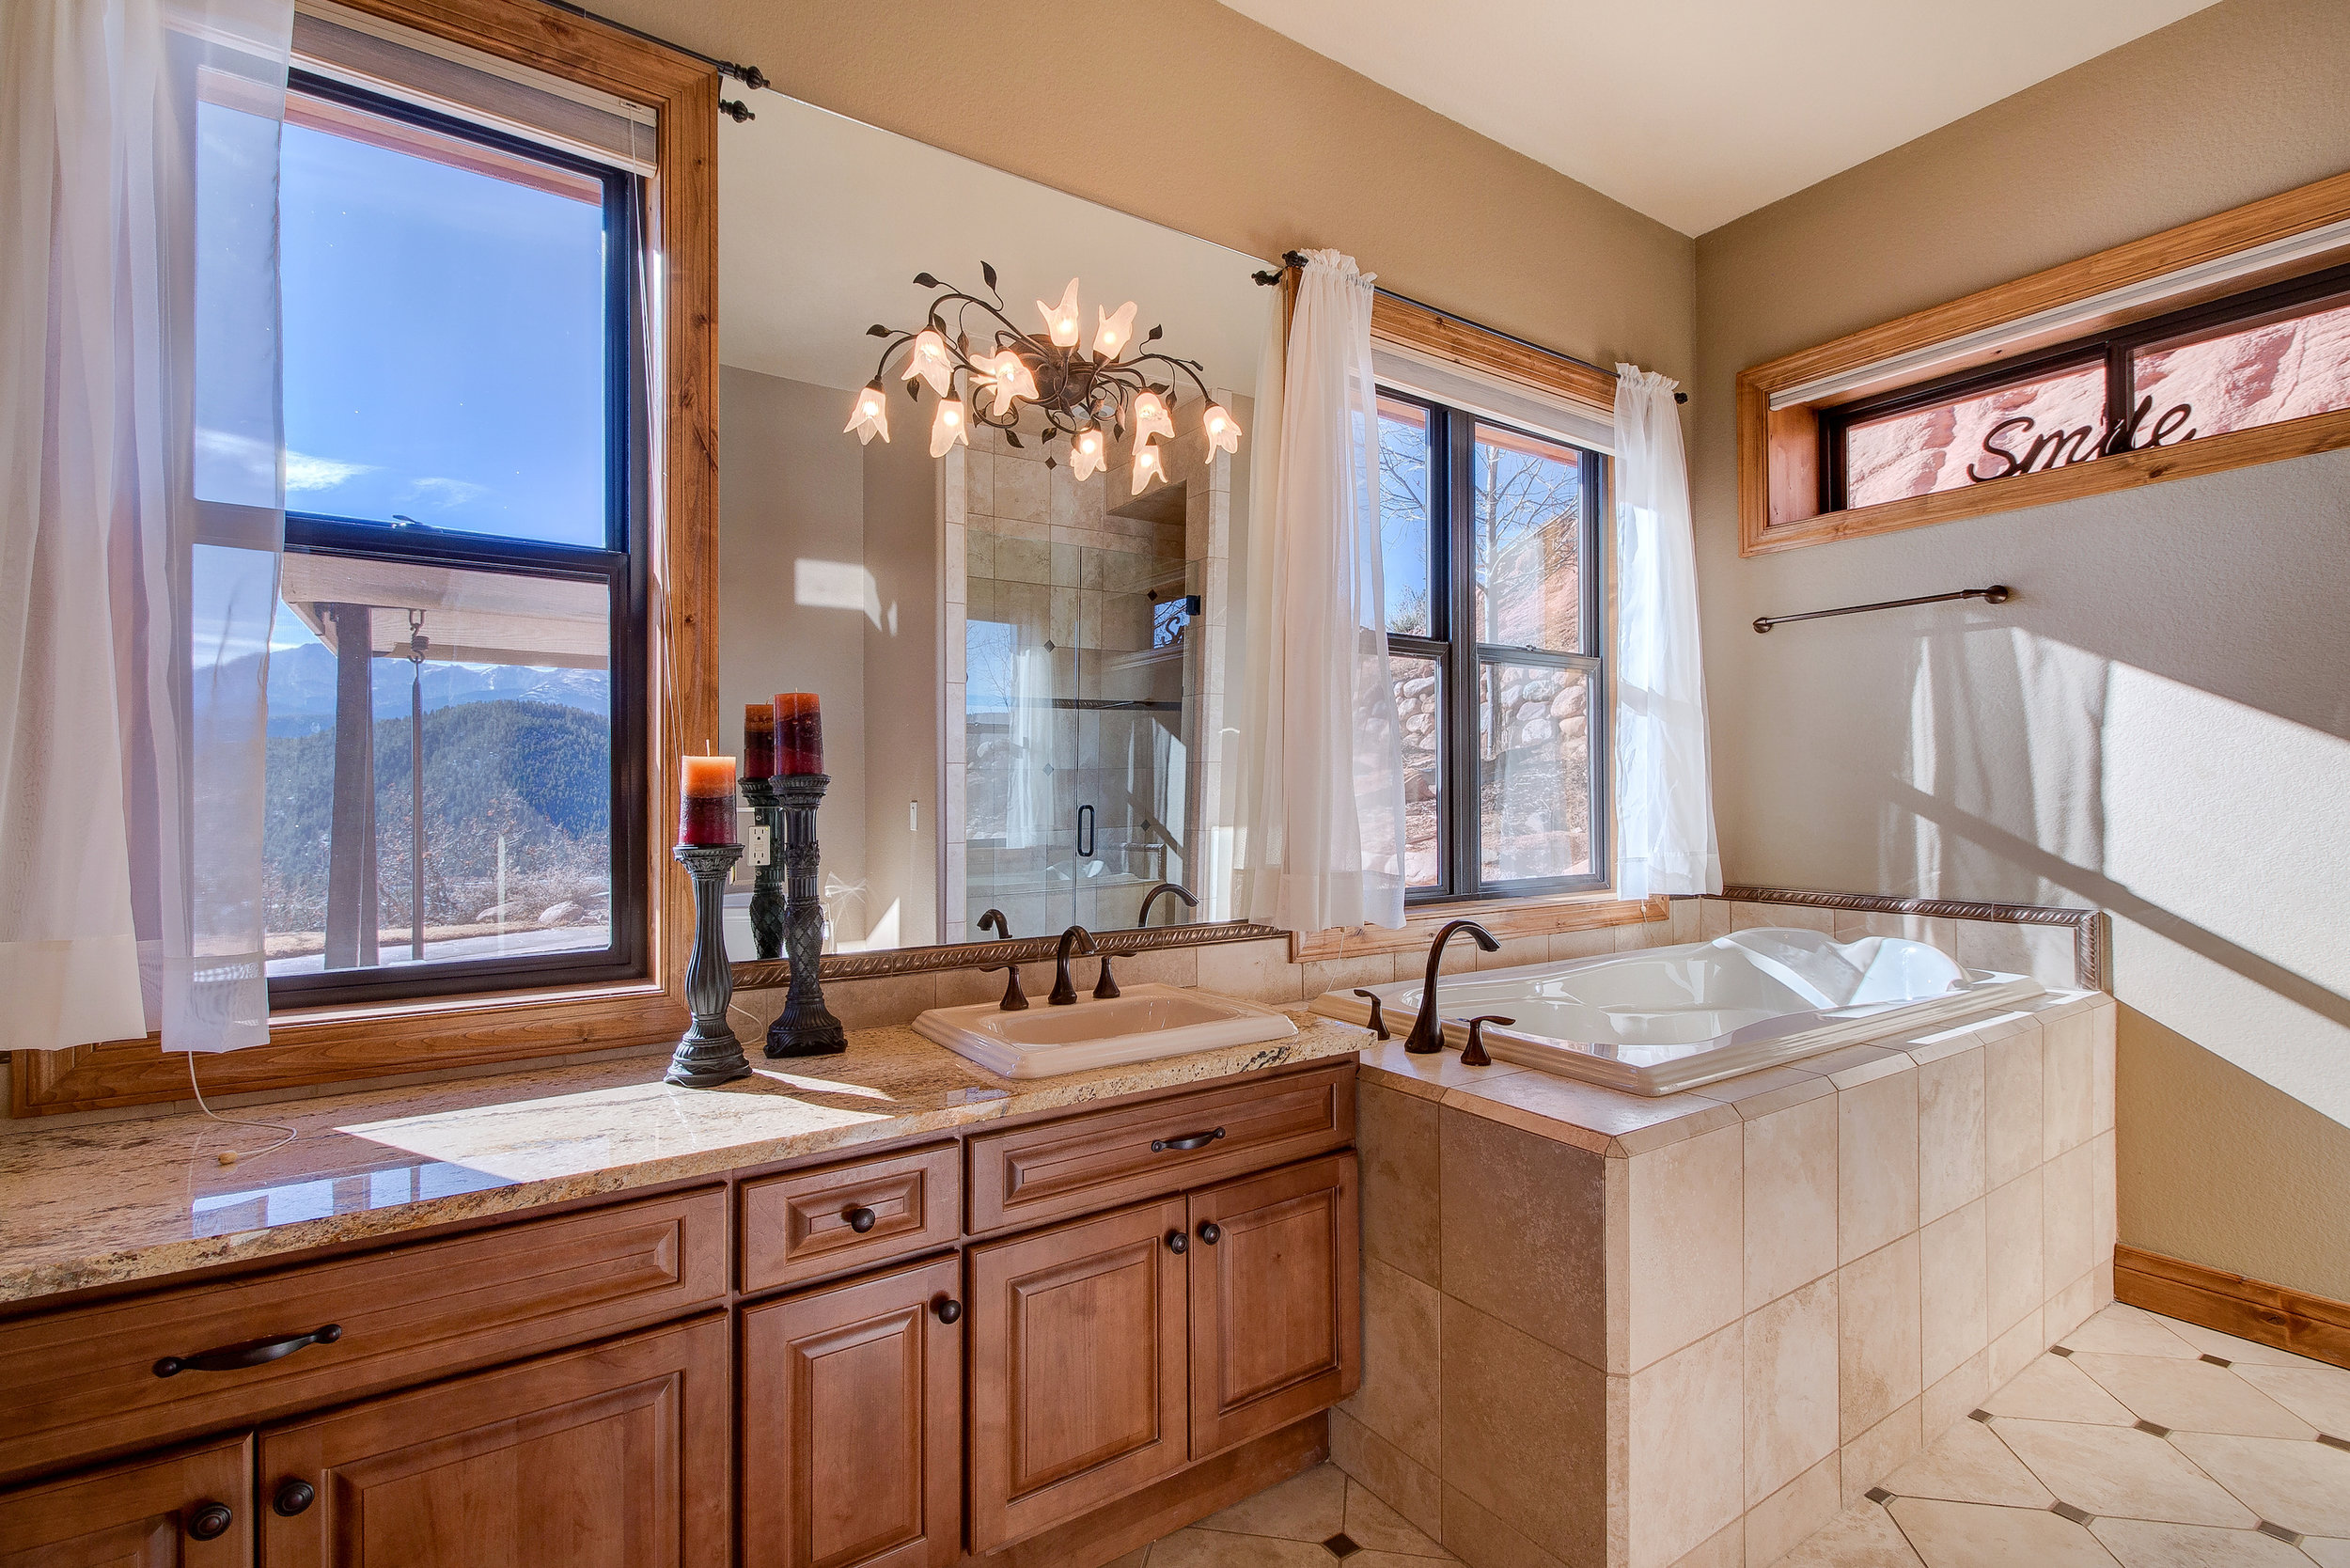 20-Her bath with soaking tub and tiled shower.jpg